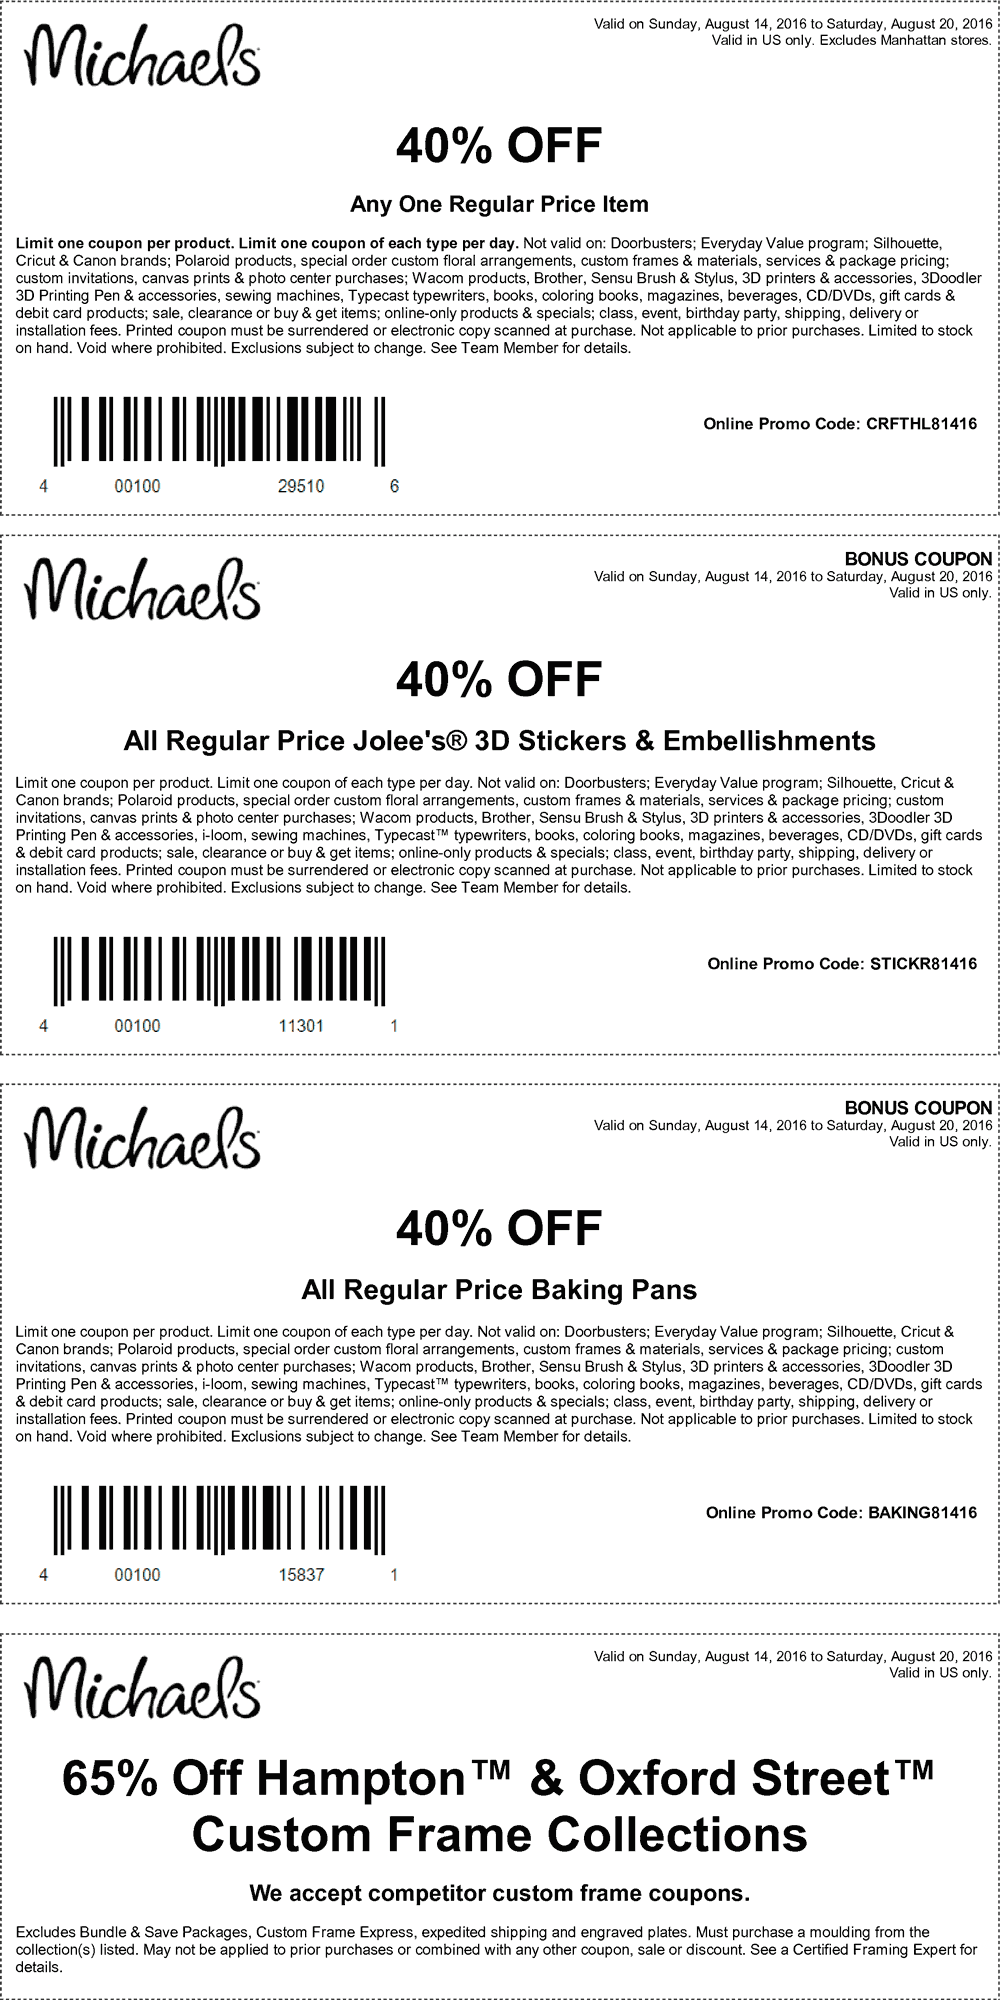 Michaels Coupon January 2017 40% off a single item at Michaels, or online via promo code CRFTHL81416